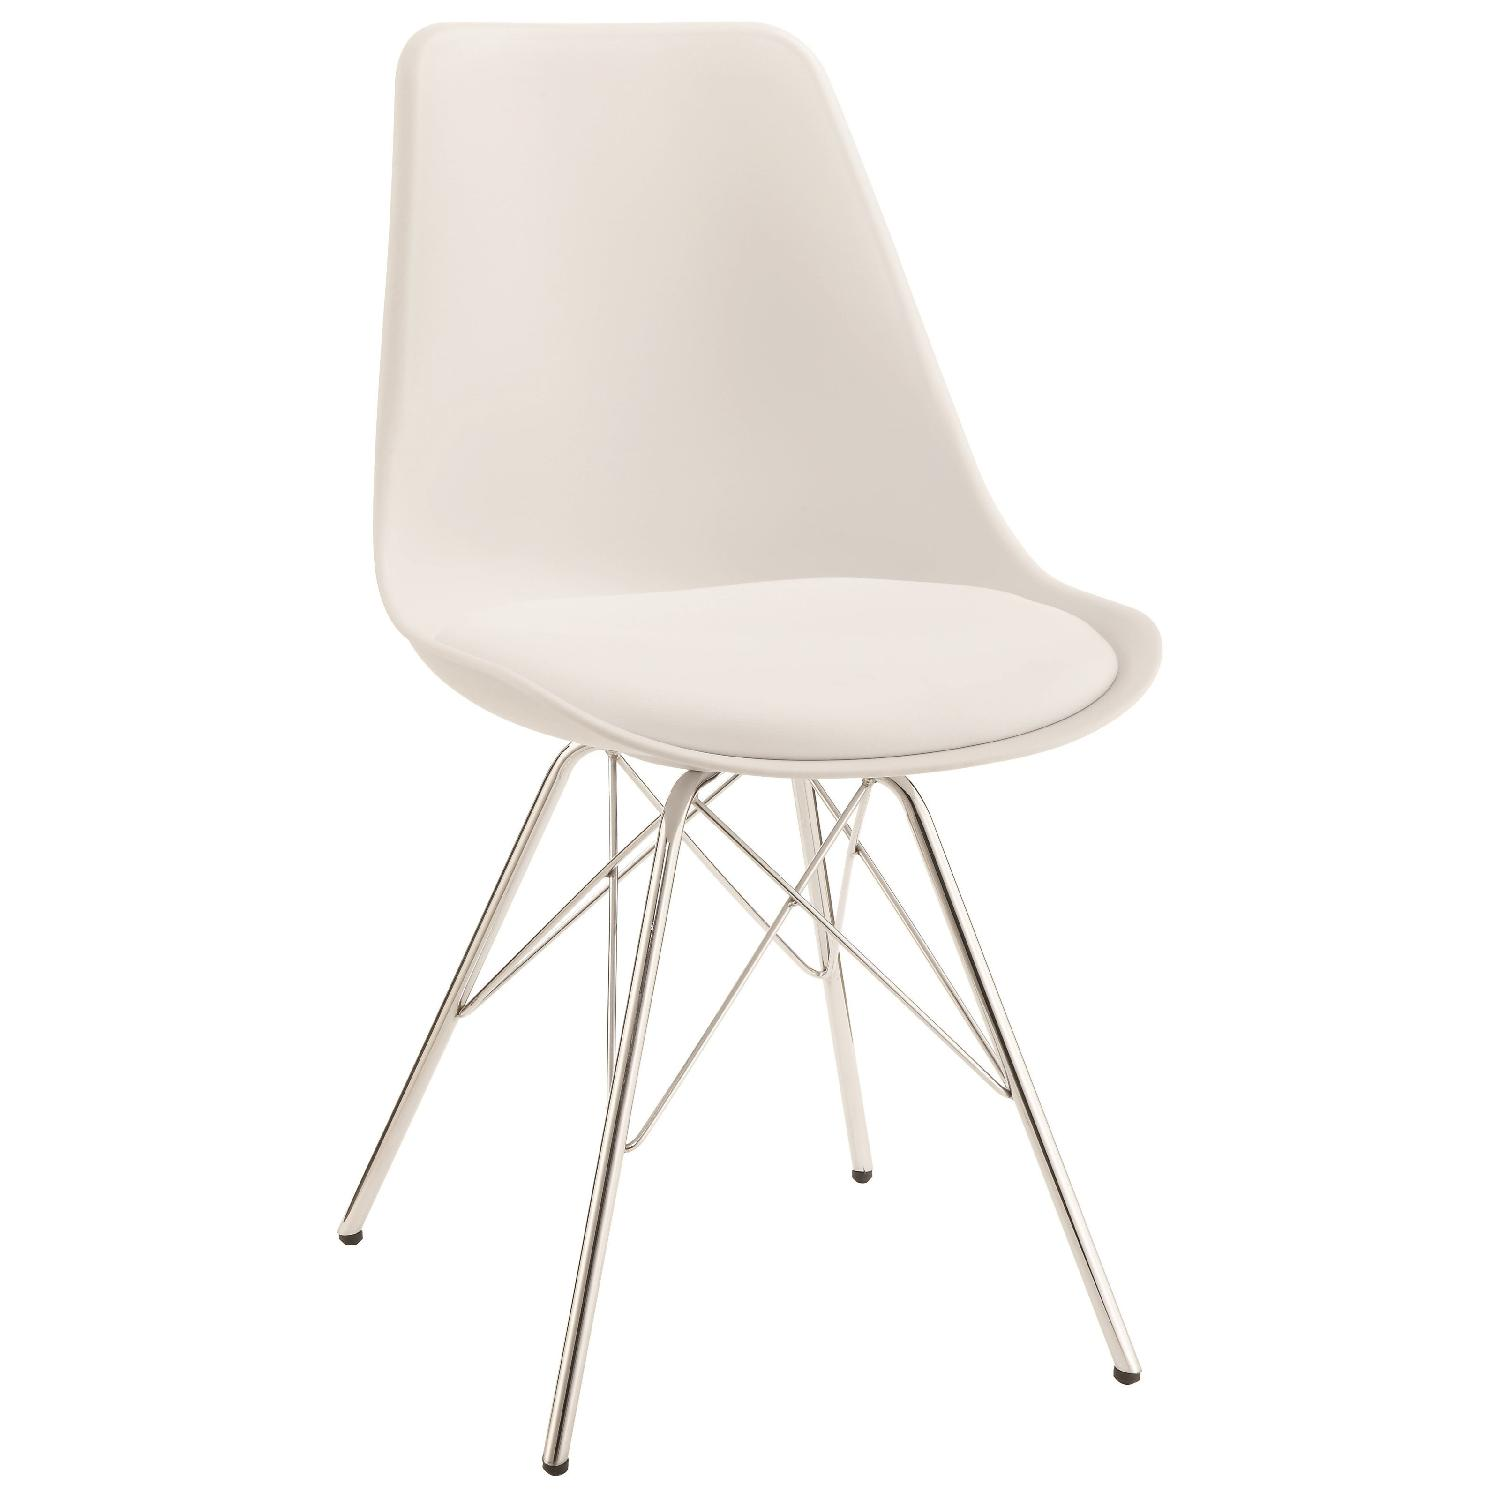 Mid Century Style Dining Chair w/ White ABS Shell Padded Seat & Metal Legs